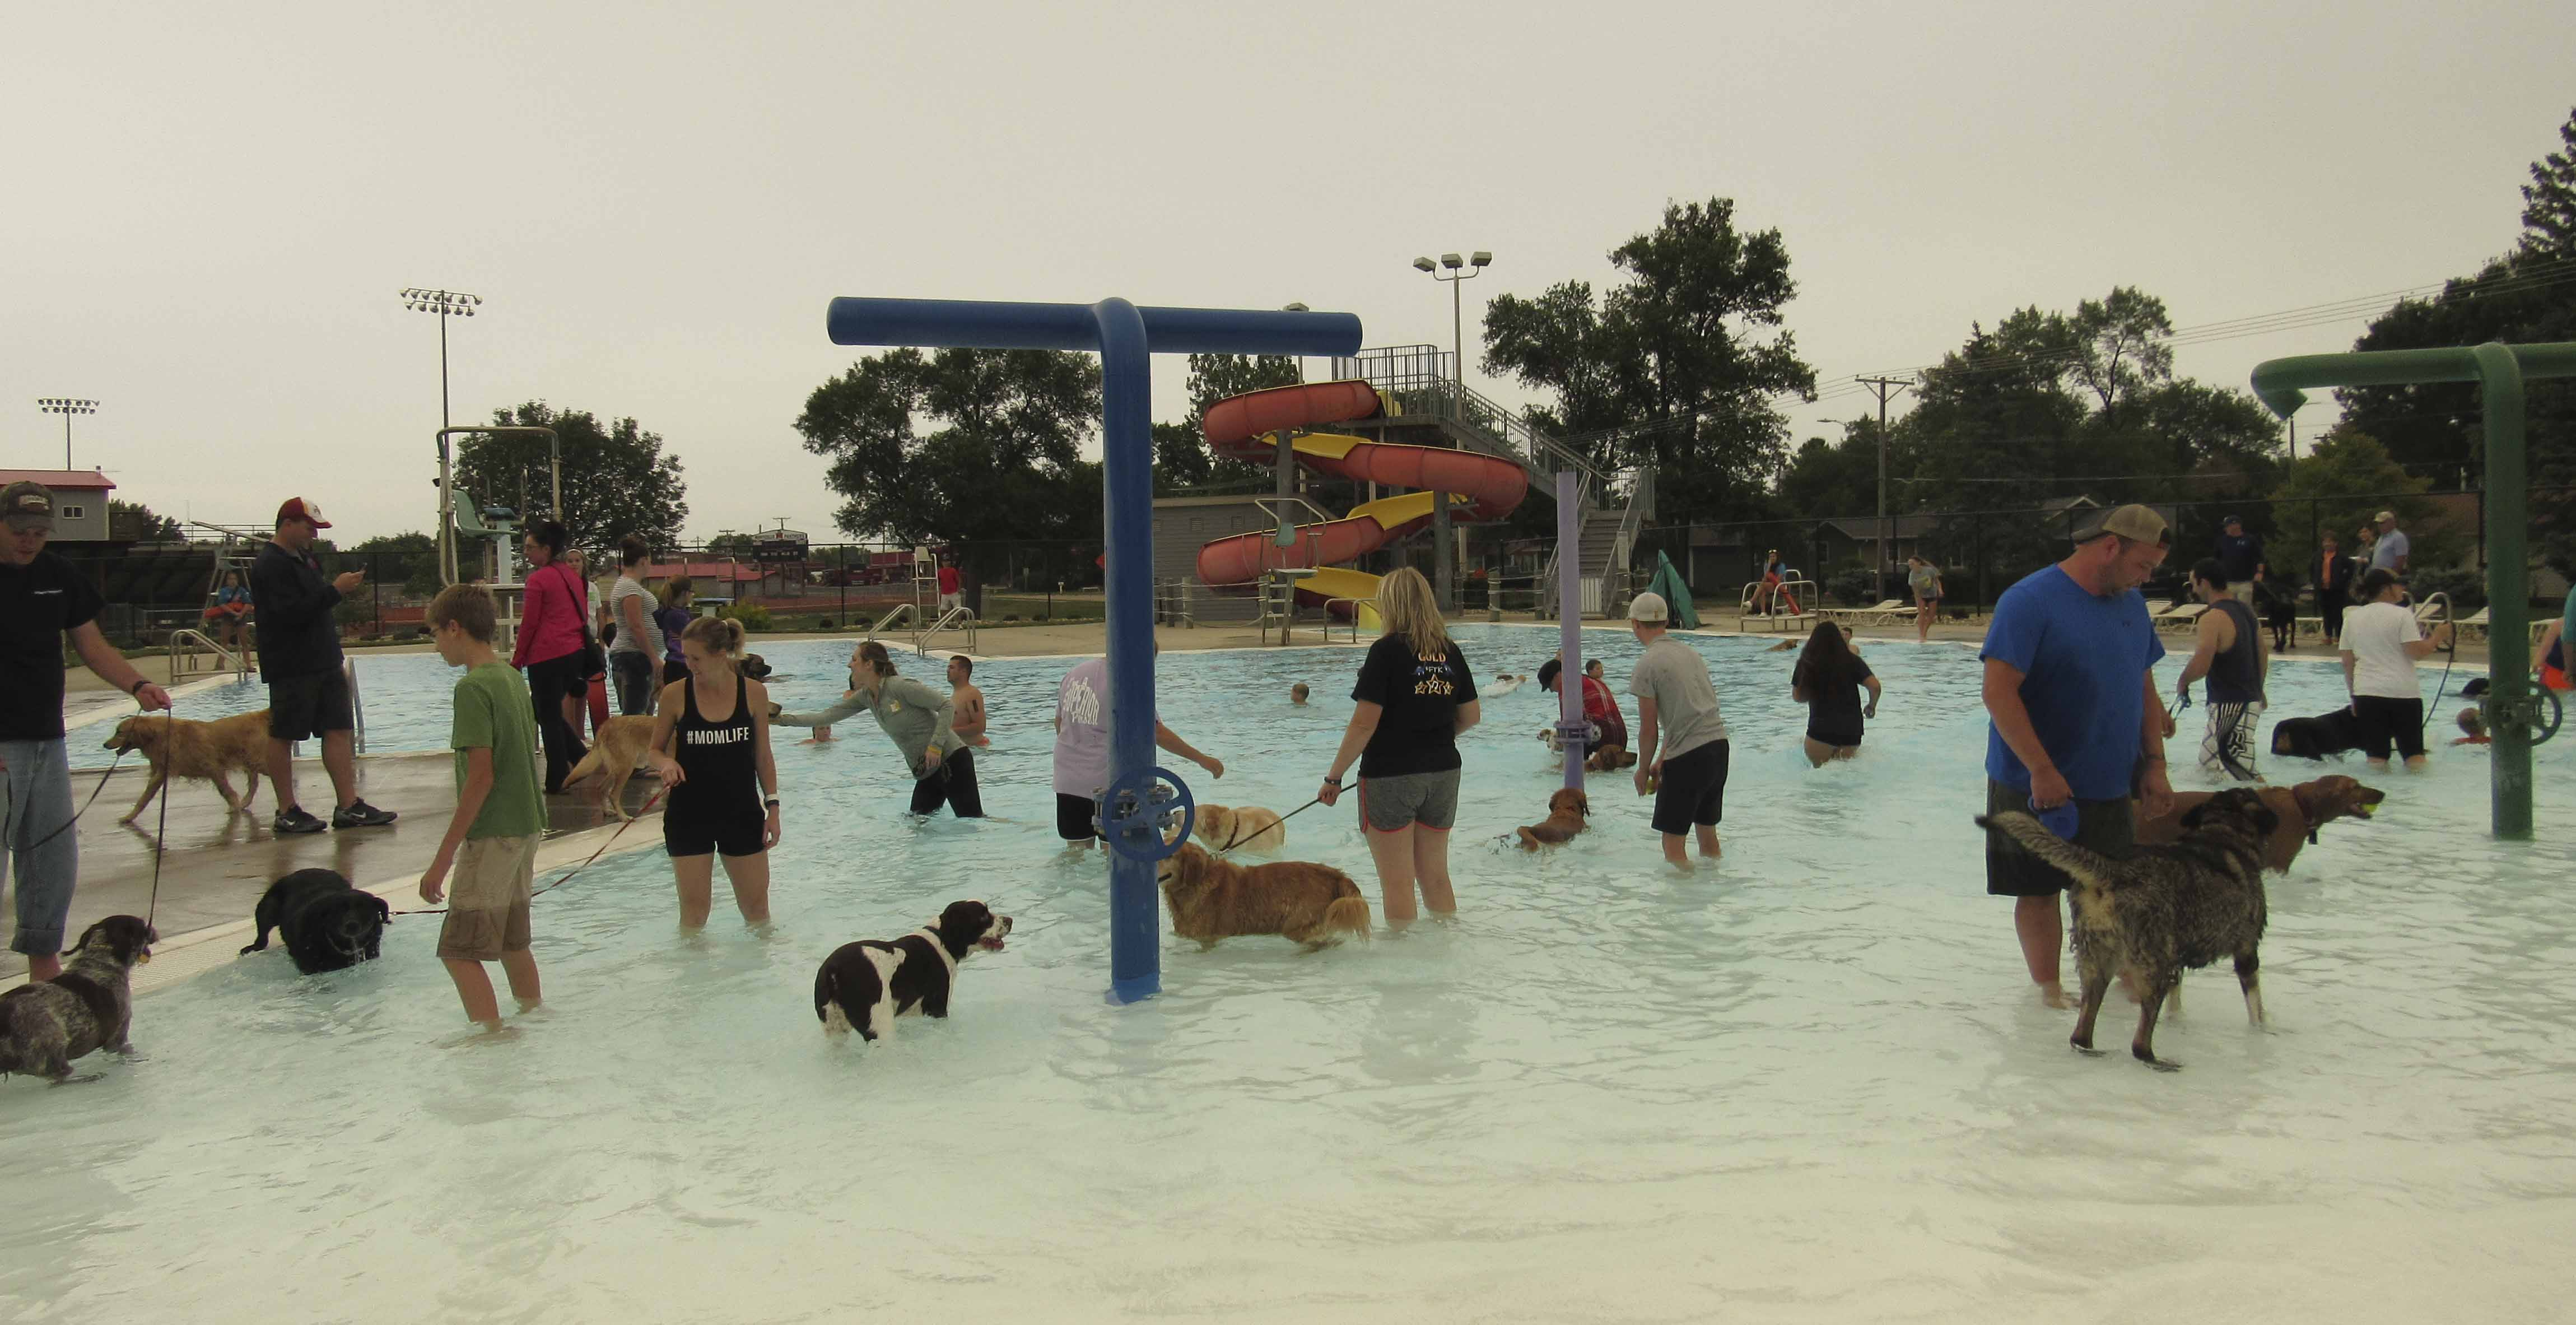 Labor Day marked the end of the summer and the last day for the Monticello Aquatic Center. A doggie swim was held that evening, with over 90 dogs in attendance. Donations were also collected for the Animal Welfare Friends Shelter. (Photo by Kim Brooks)